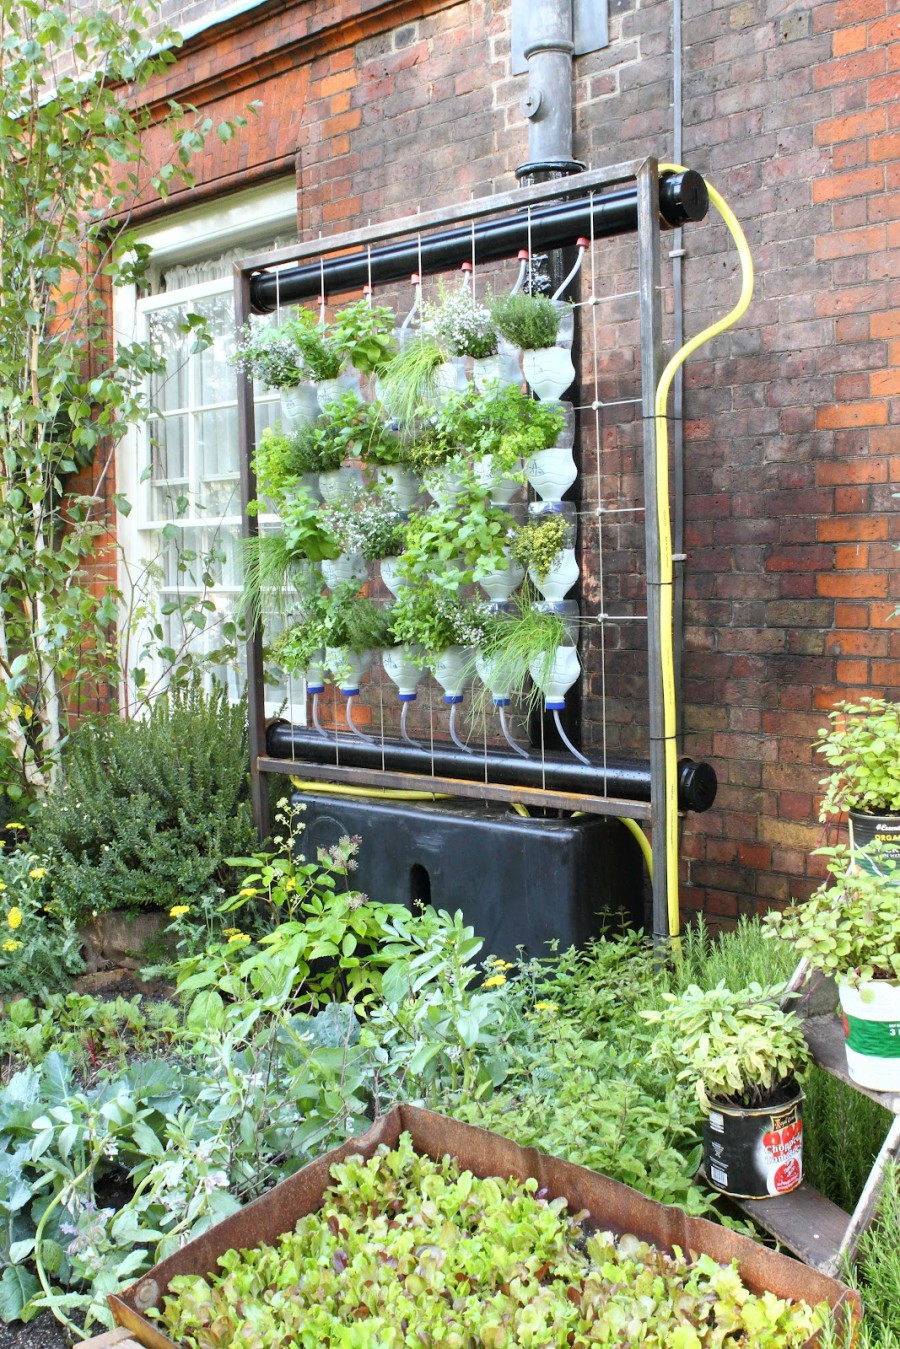 Wall garden with hydroponic cultivation and recirculating system for feeding the plants.